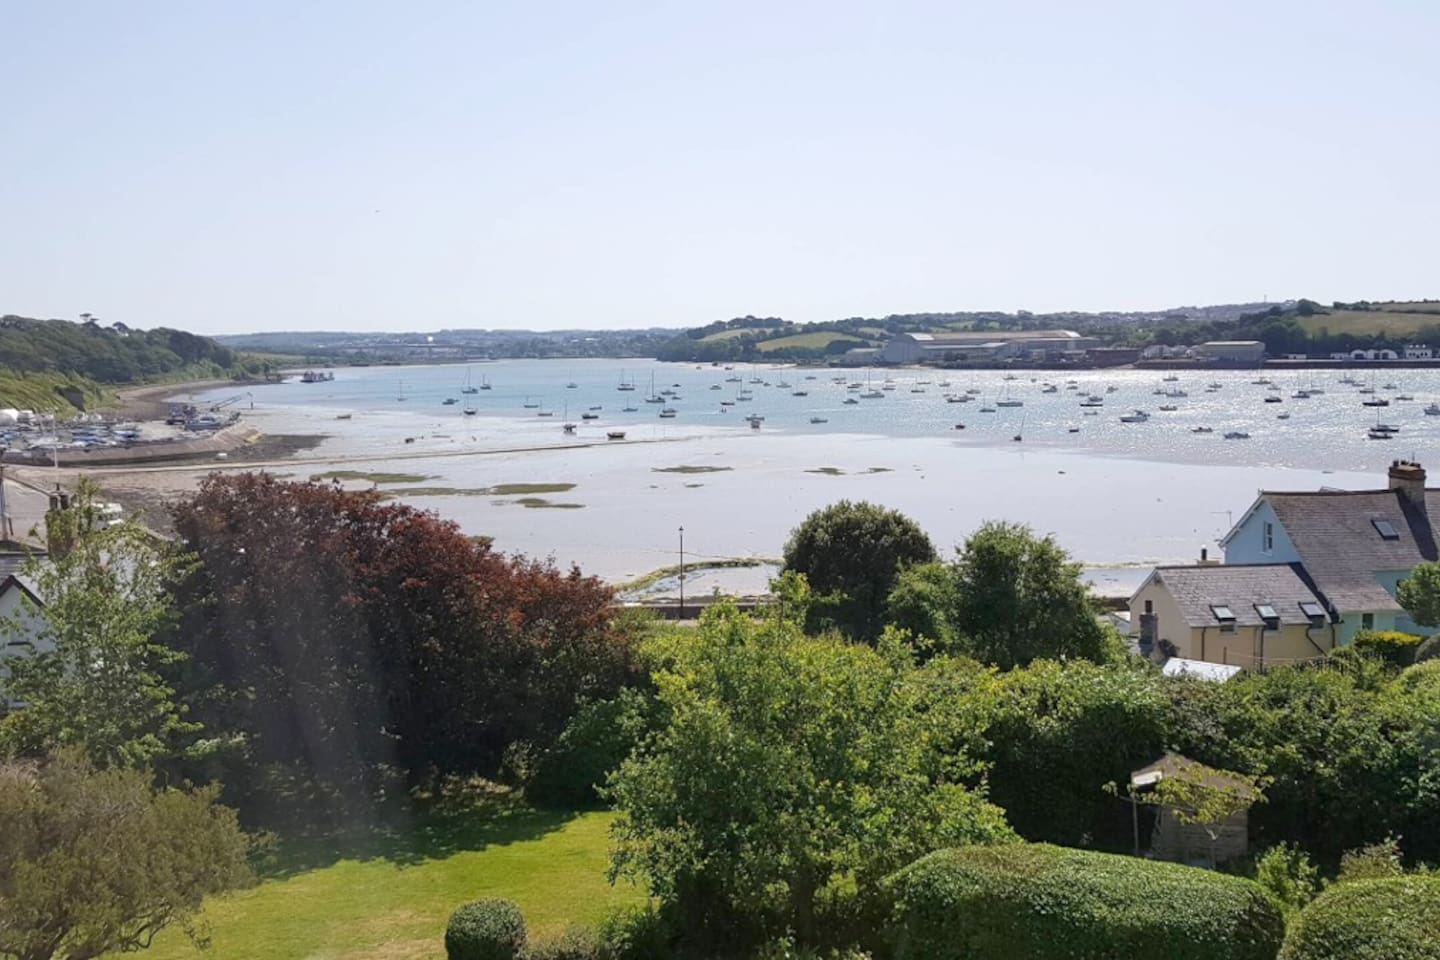 View from the sitting room towards the water, with the tide half out